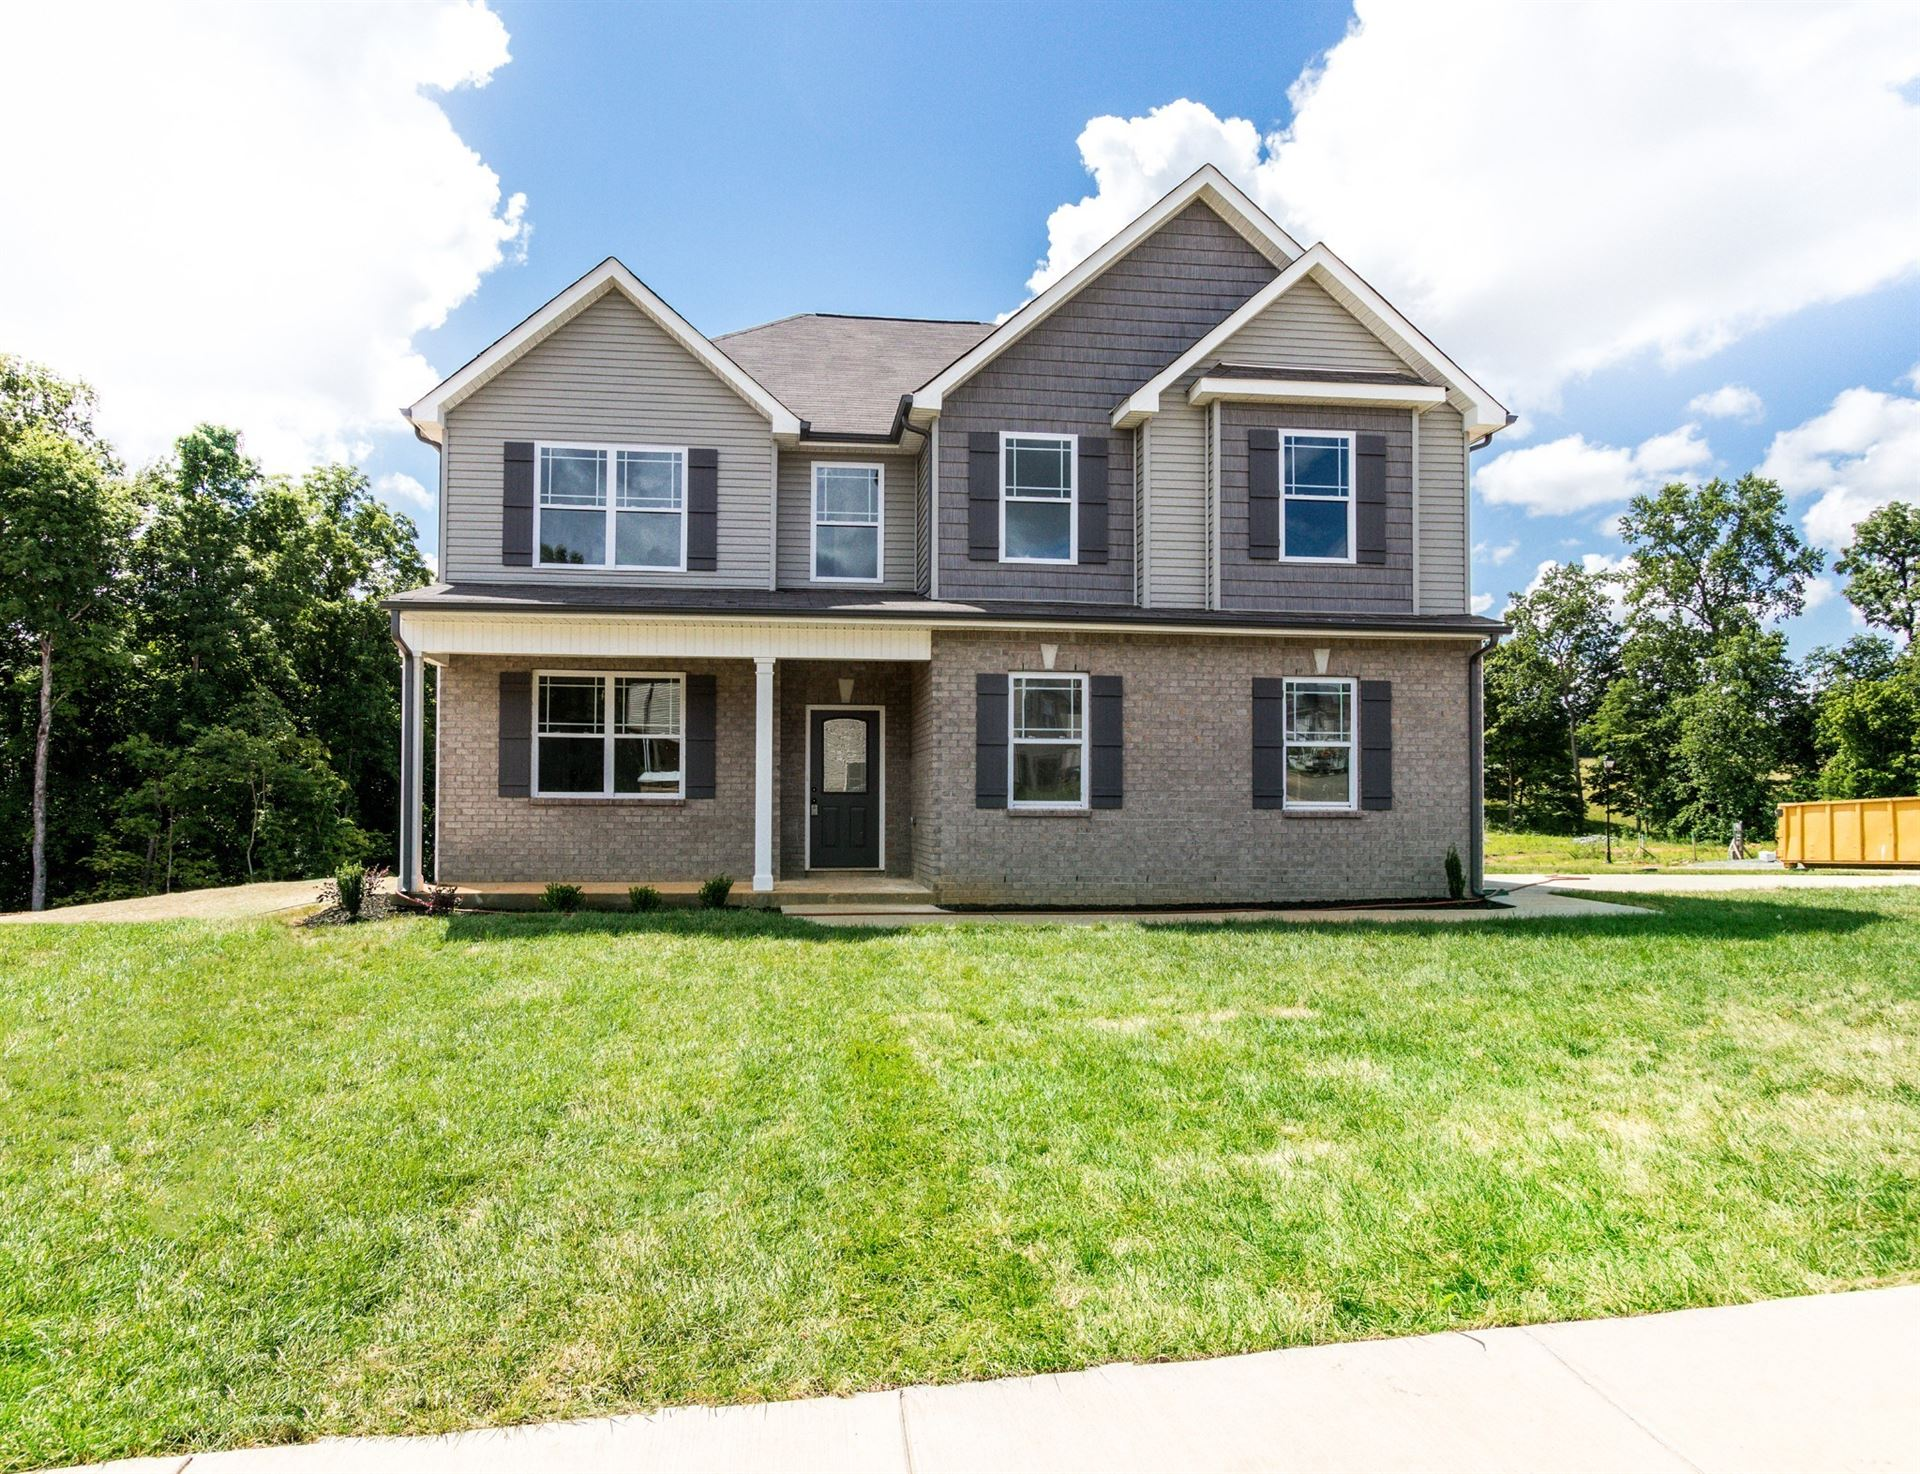 454 West Creek Farms, Clarksville, TN 37042 - MLS#: 2231912